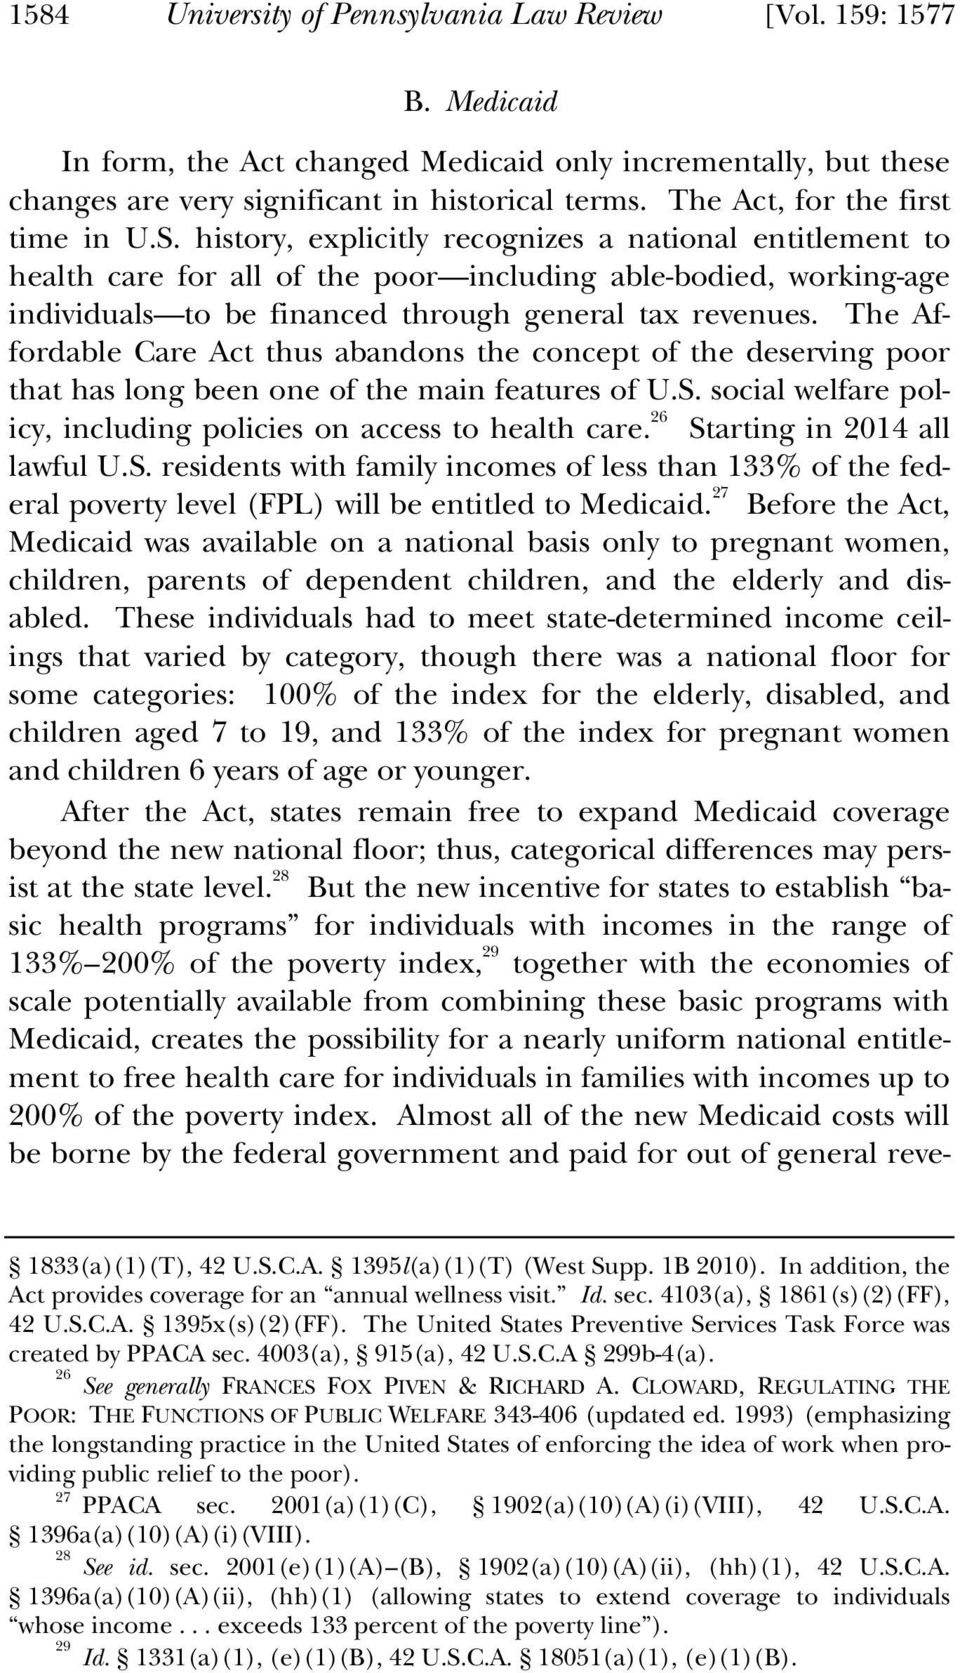 history, explicitly recognizes a national entitlement to health care for all of the poor including able-bodied, working-age individuals to be financed through general tax revenues.